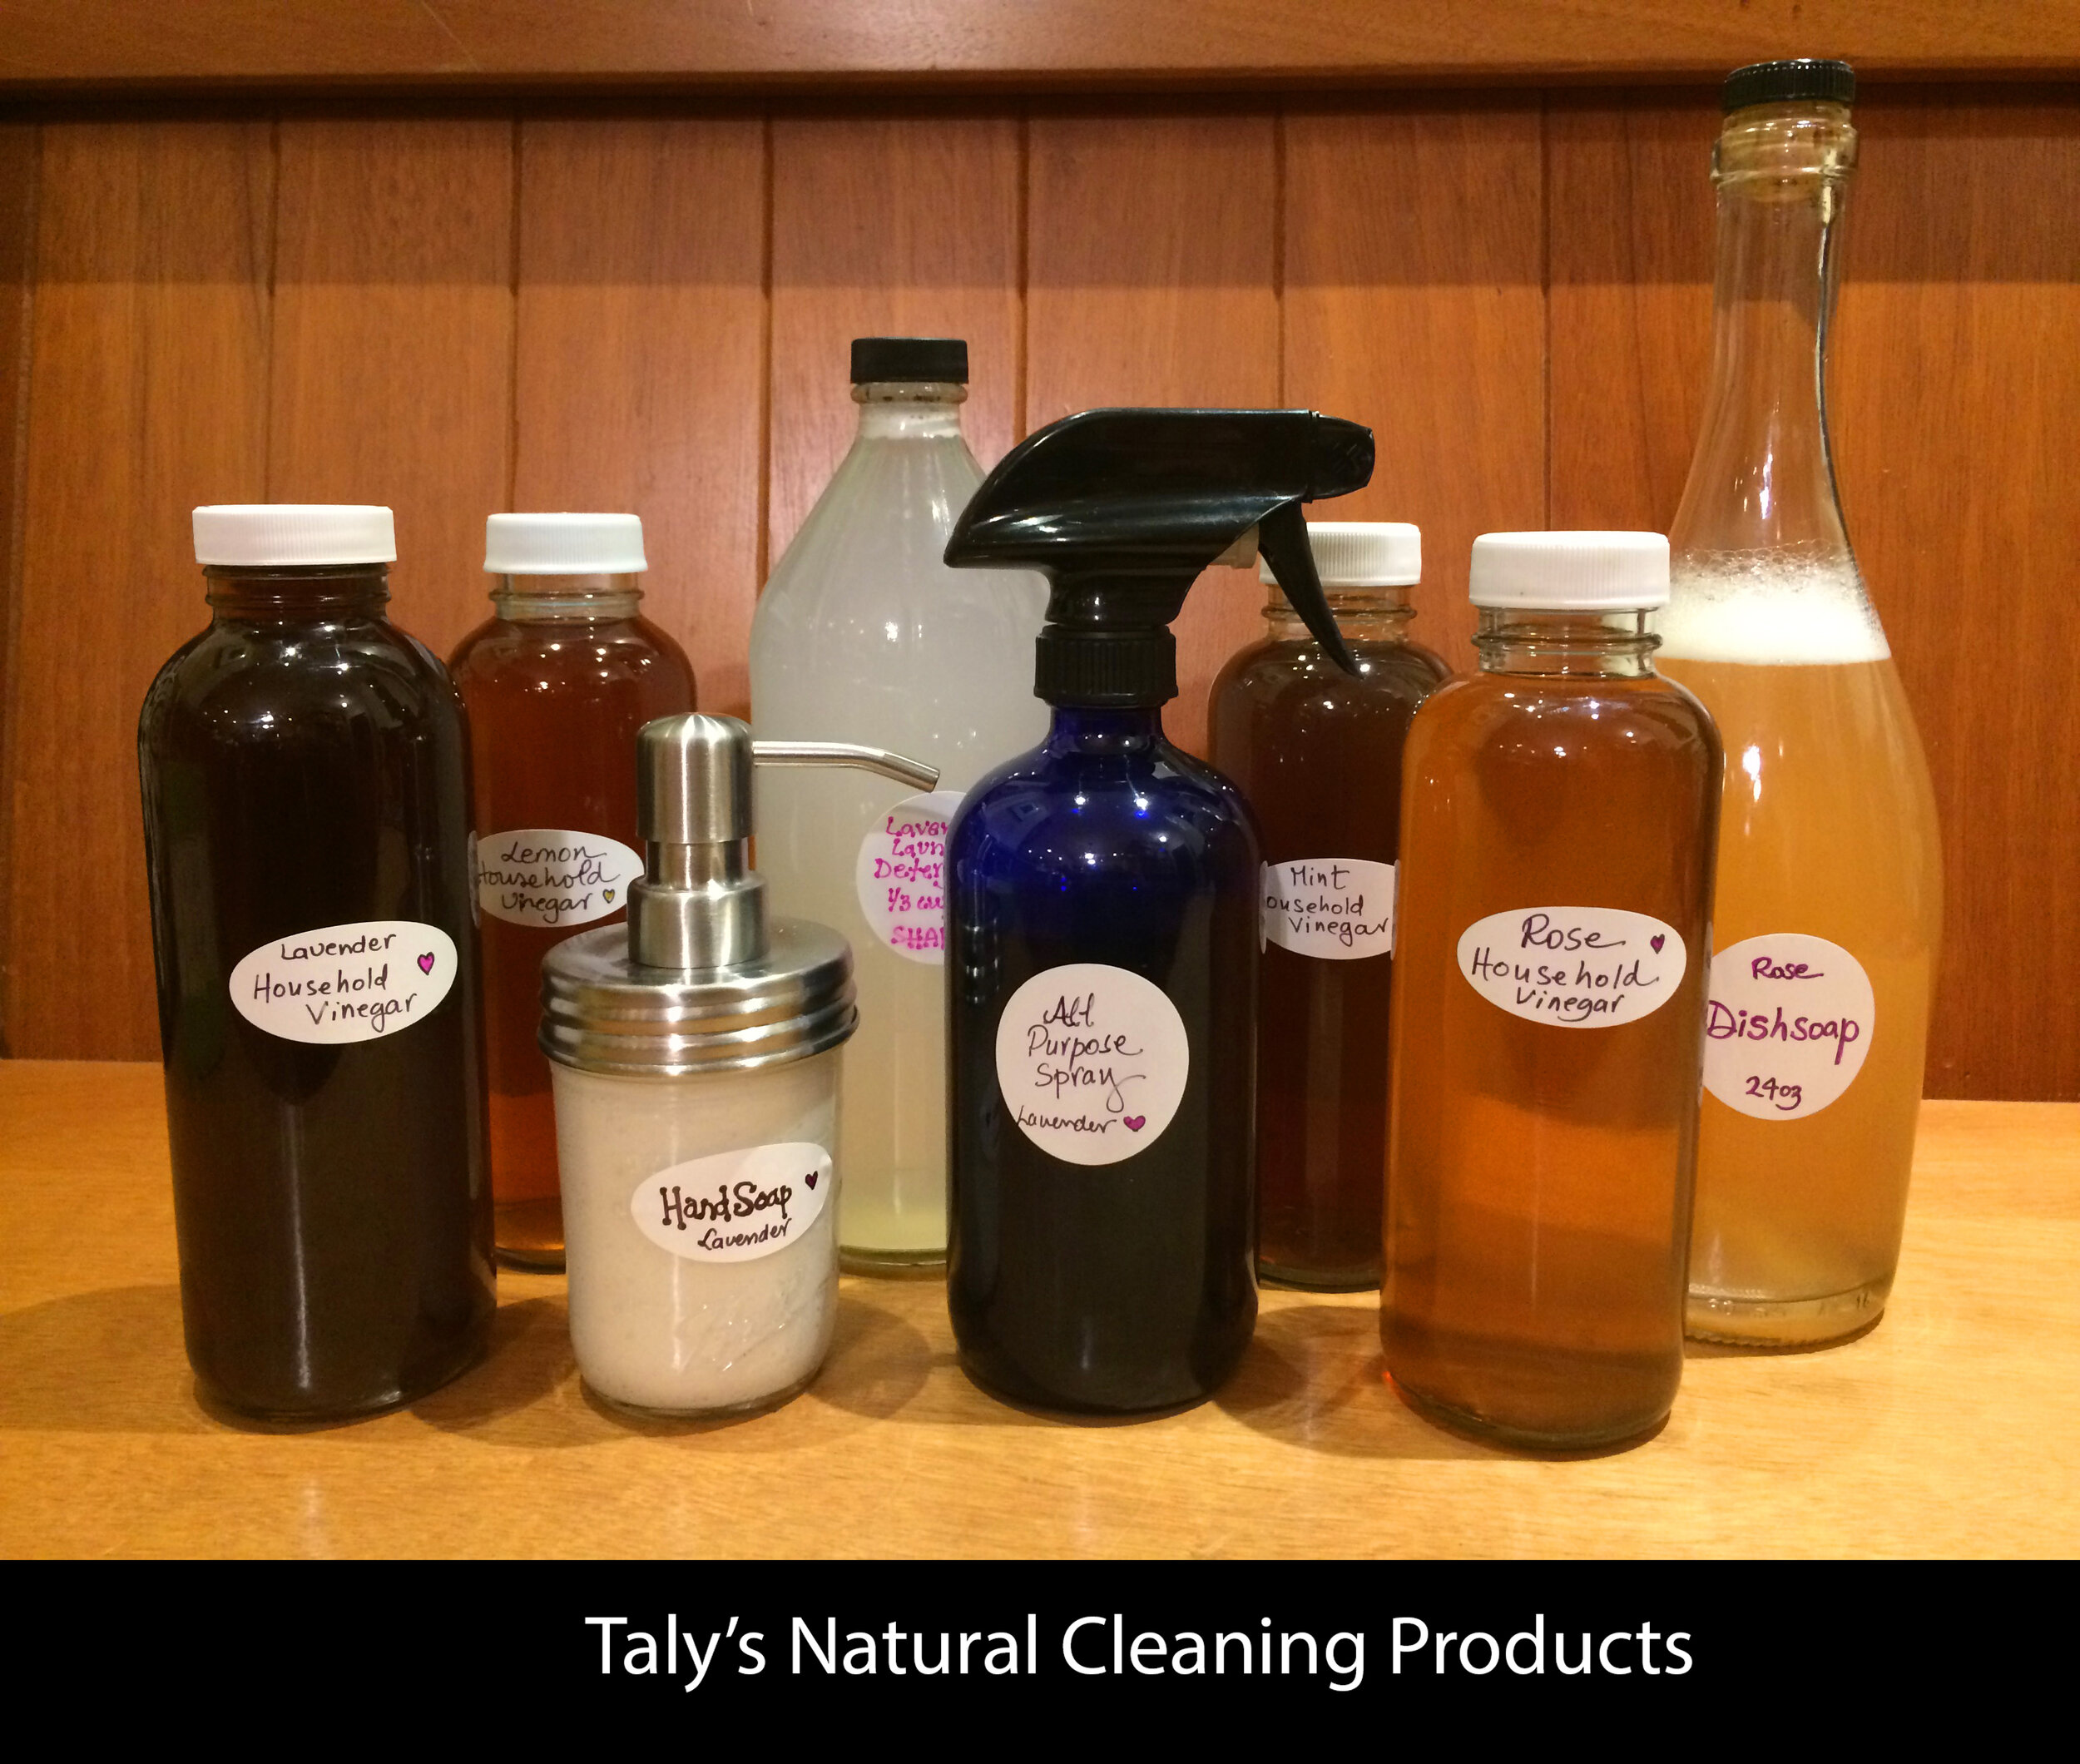 Taly's Natural Cleaning Products